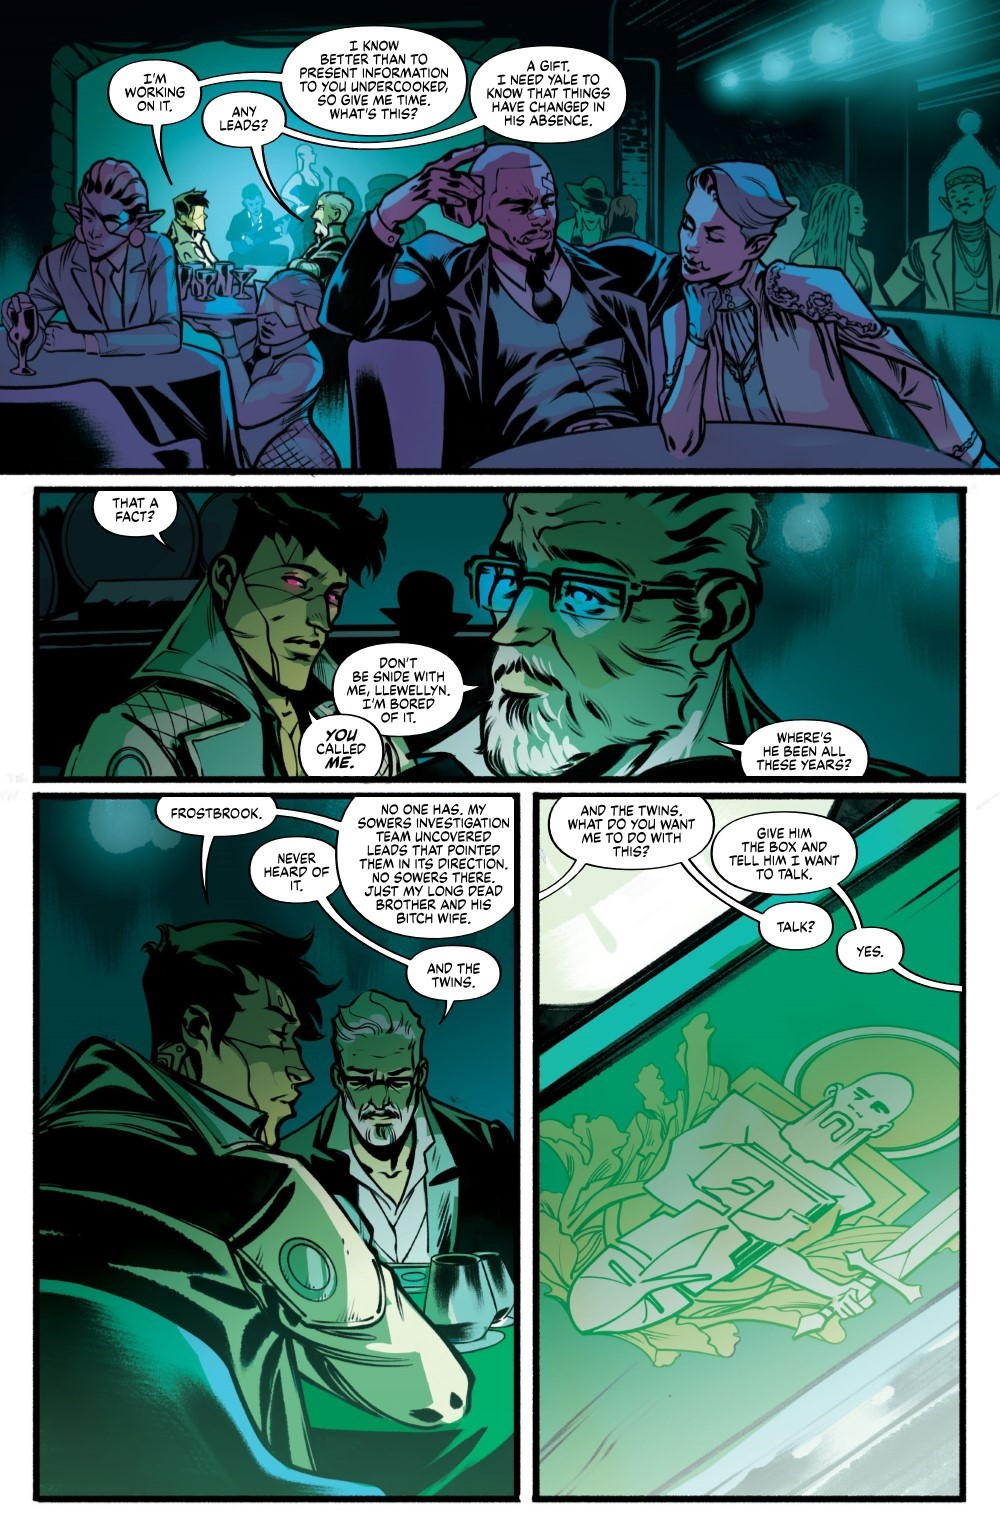 DRYAD-V2-TPB-REFERENCE-011 ComicList Previews: DRYAD VOLUME 2 TP